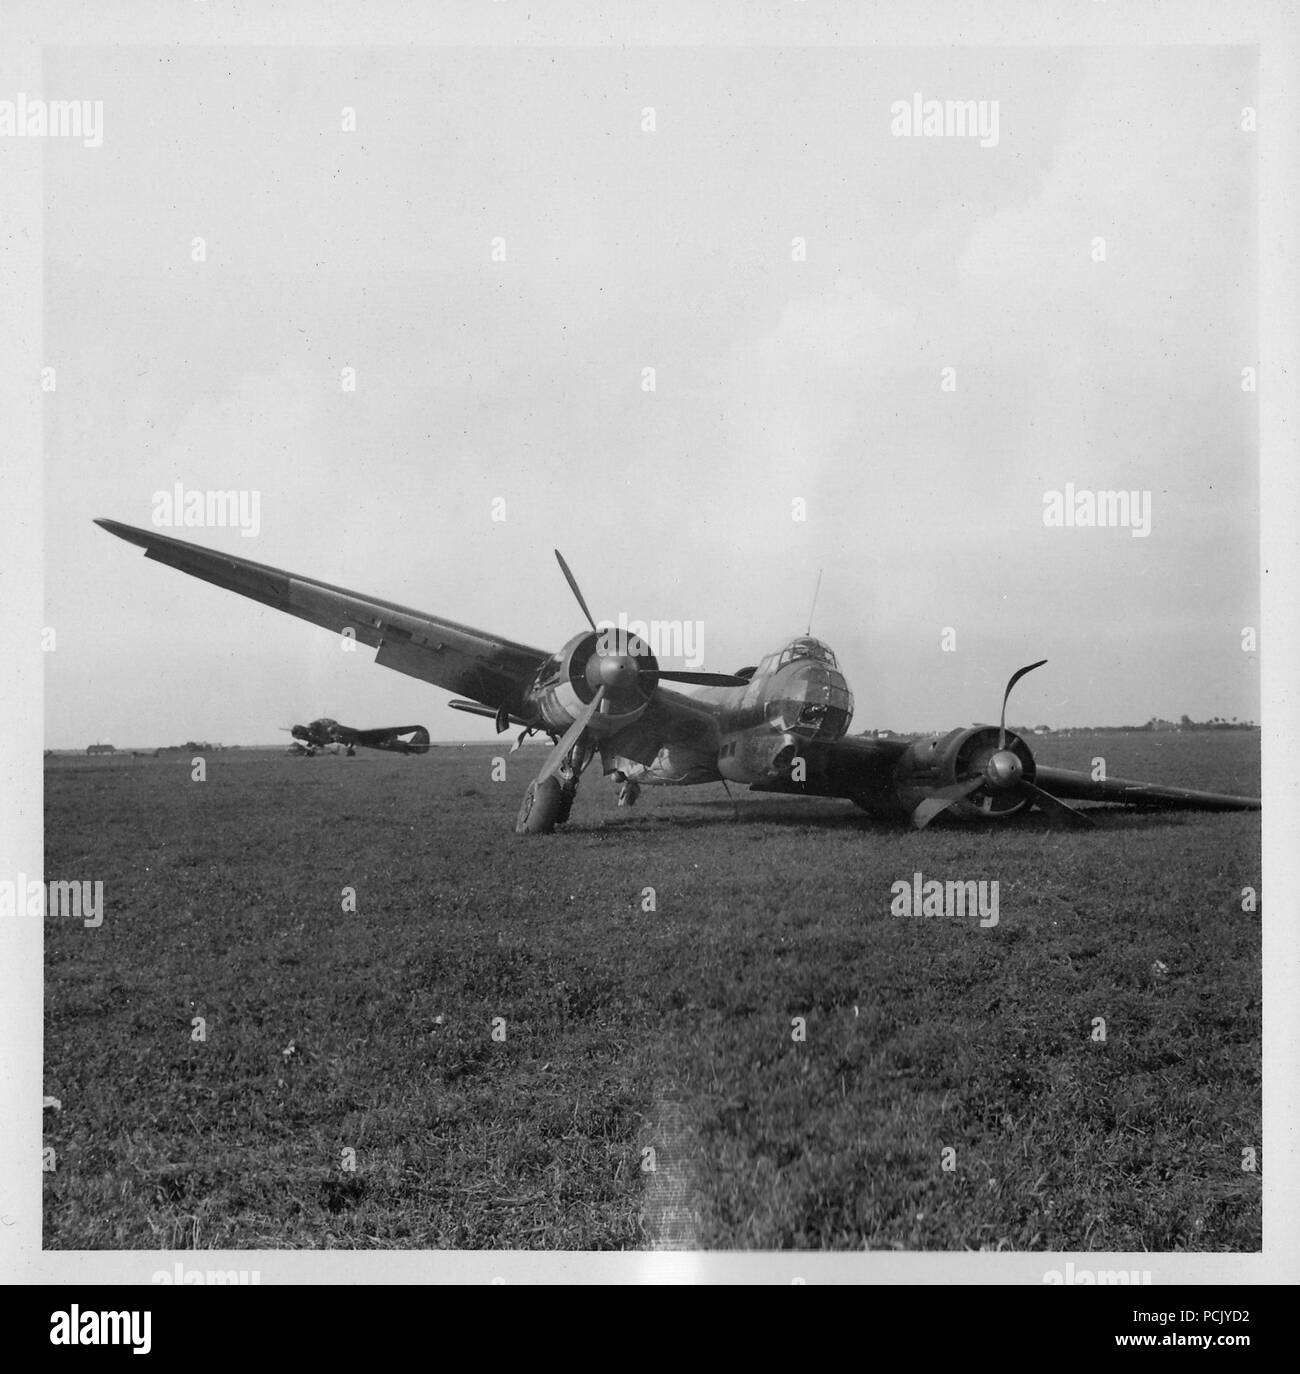 Image from a photo album relating to II. Gruppe, Jagdgeschwader 3: A Junkers Ju 88 of Kampfgeschwader 54, field modified to carry a 20mm cannon in its nose glazing, rests on its collapsed undercarriage on an airfield in Russia in 1941. The 'Totenkopf' (Death's Head) badge of the Geschwader can be seen on the side of the cockpit. - Stock Image